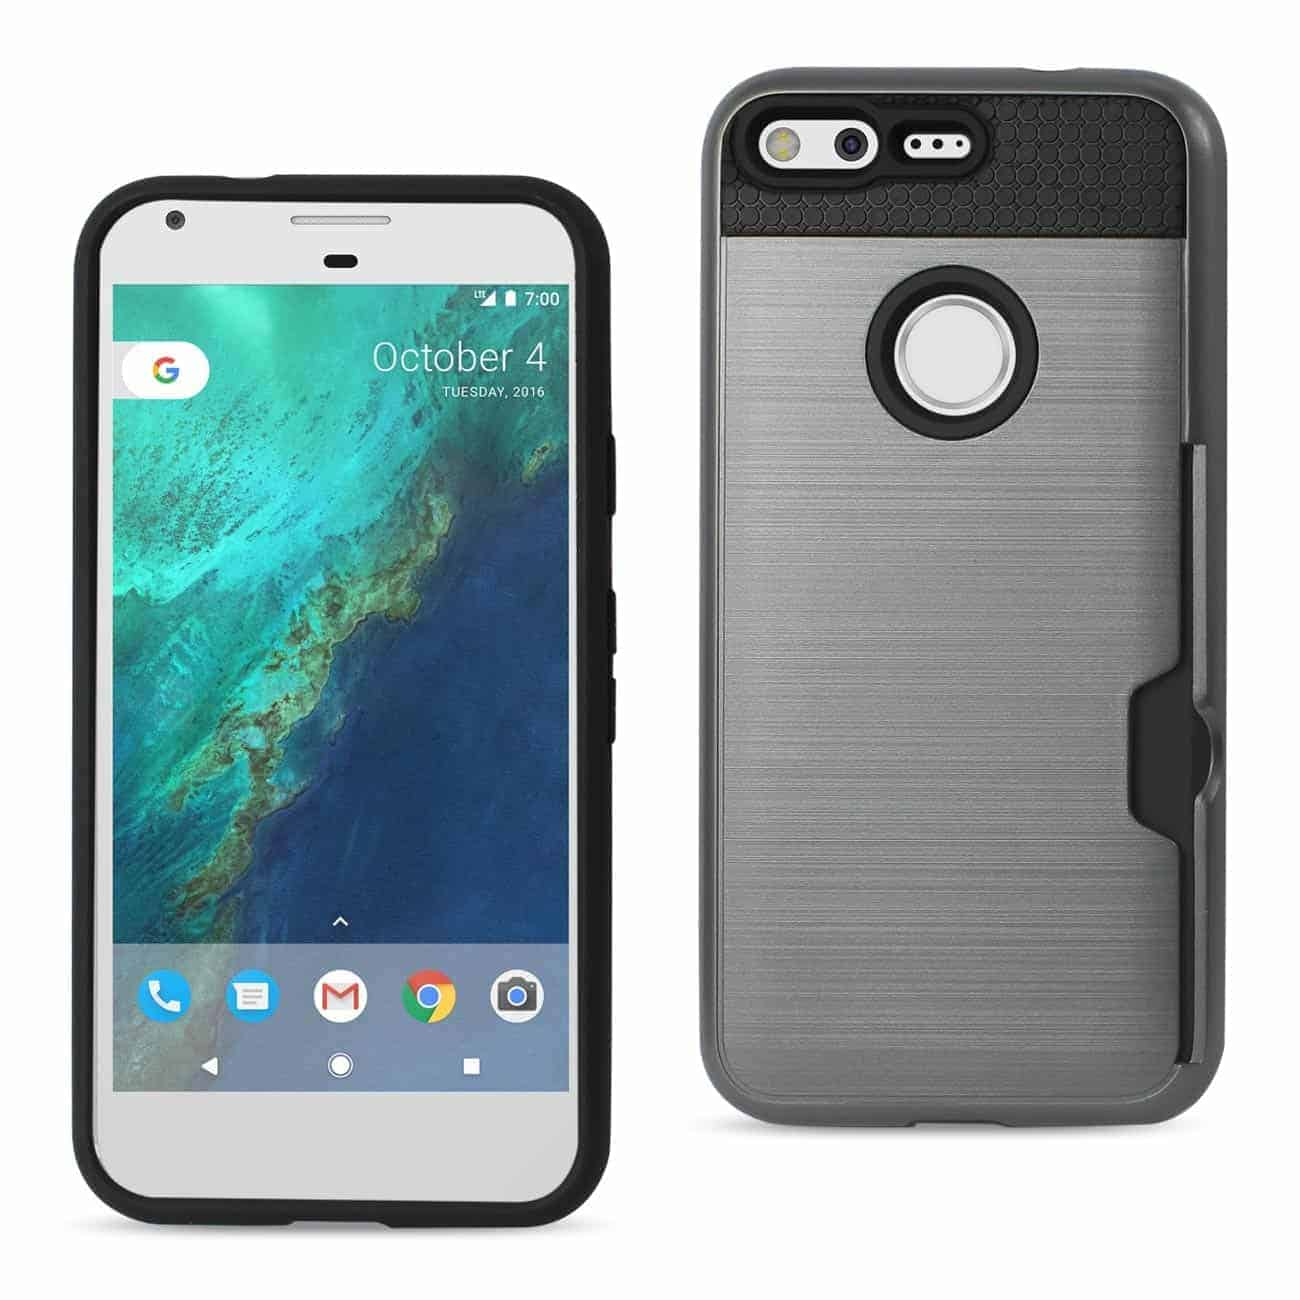 GOOGLE PIXEL SLIM ARMOR HYBRID CASE WITH CARD HOLDER IN GRAY